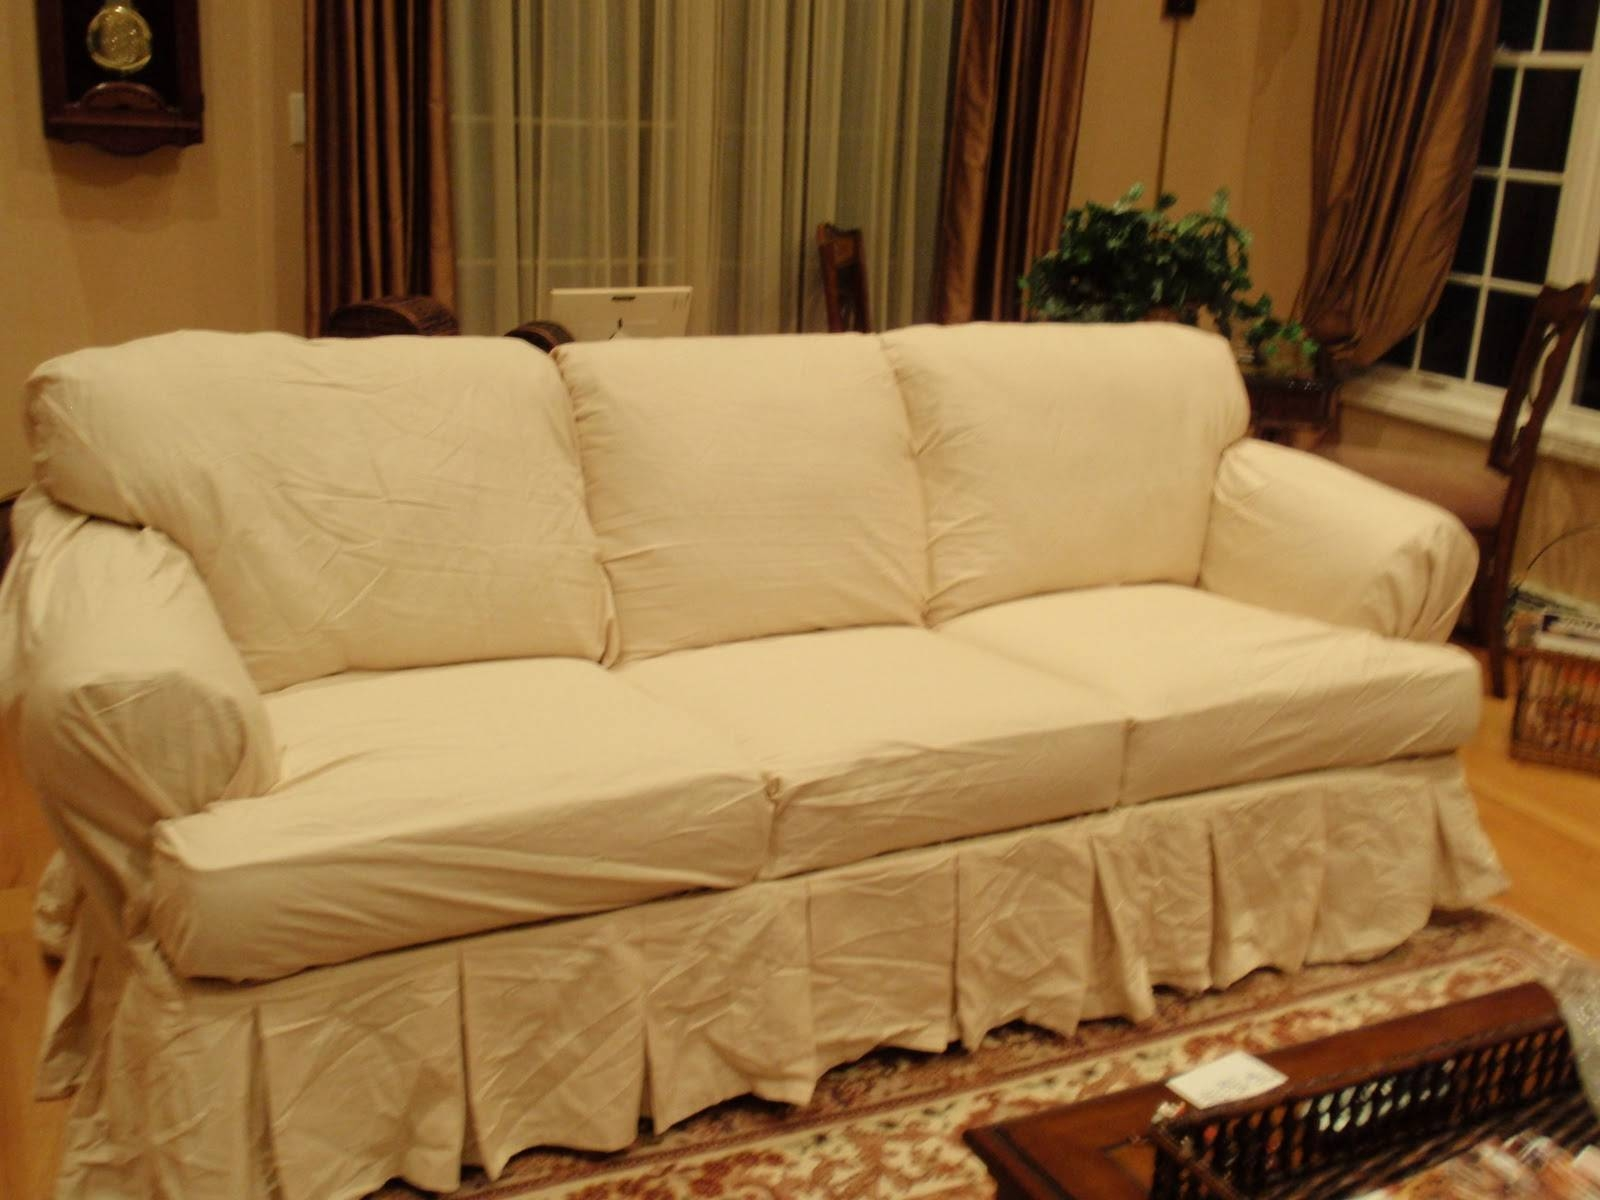 Furniture: Update Your Living Room With Best Sofa Slipcover Design pertaining to Slipcovers Sofas (Image 13 of 30)